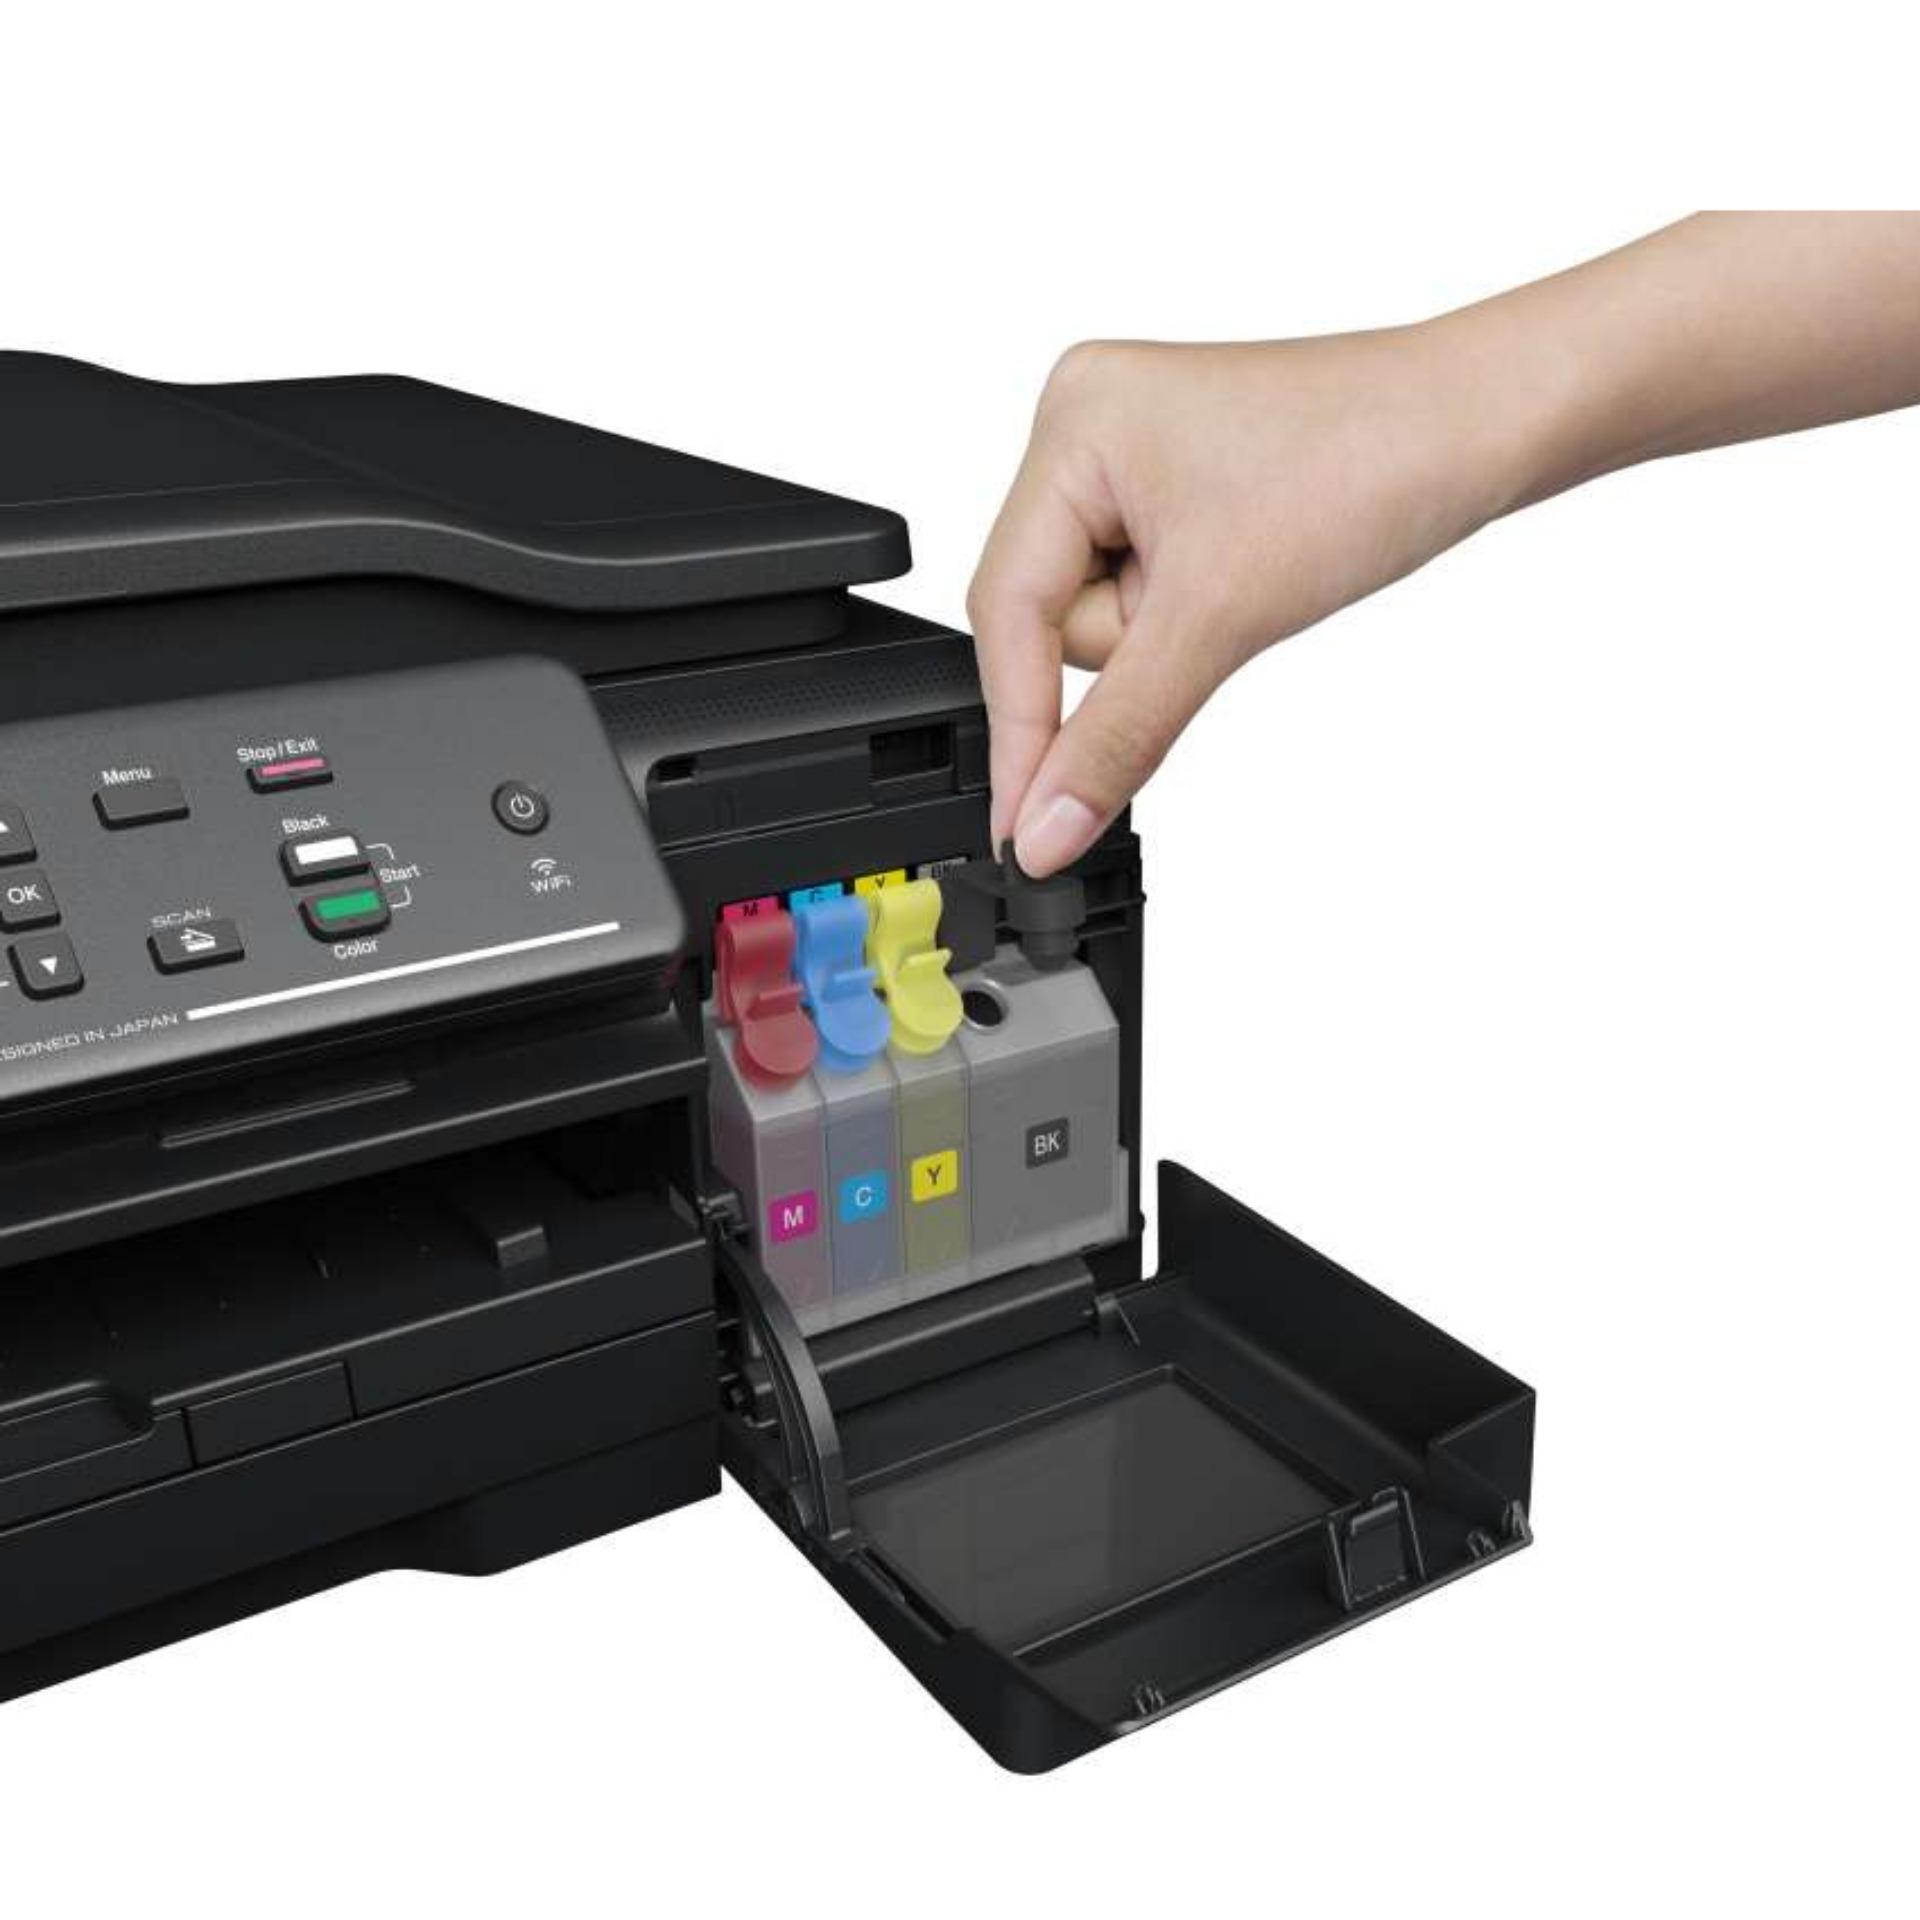 Brother Printer Inkjet Multifungsi DCP-T700W - Hitam .